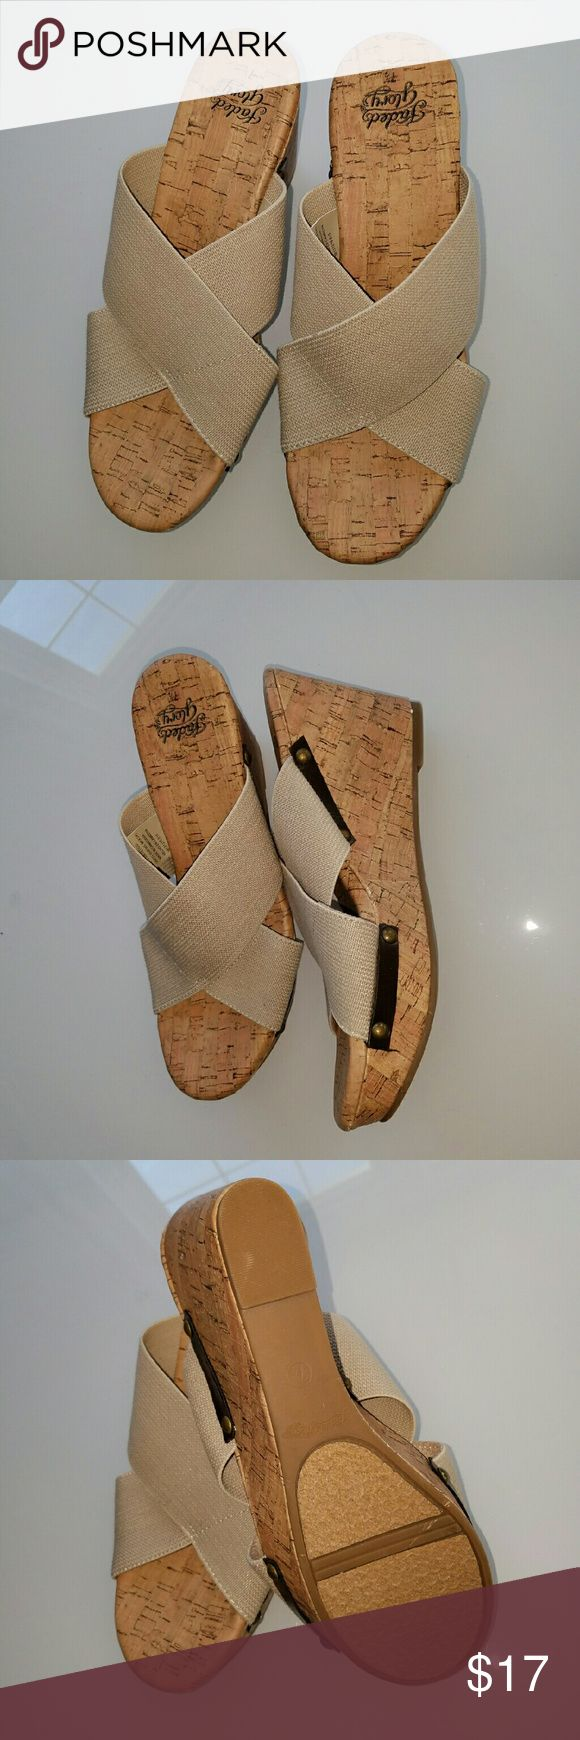 New Faded Glory Tan Wedge Cork Sandals These are new with no box. Great wear with anything sandal. Elastic strap for a comfortable fit.  Brand: Faded Glory Color: Tan Size: 7 1/2 Faded Glory Shoes Sandals